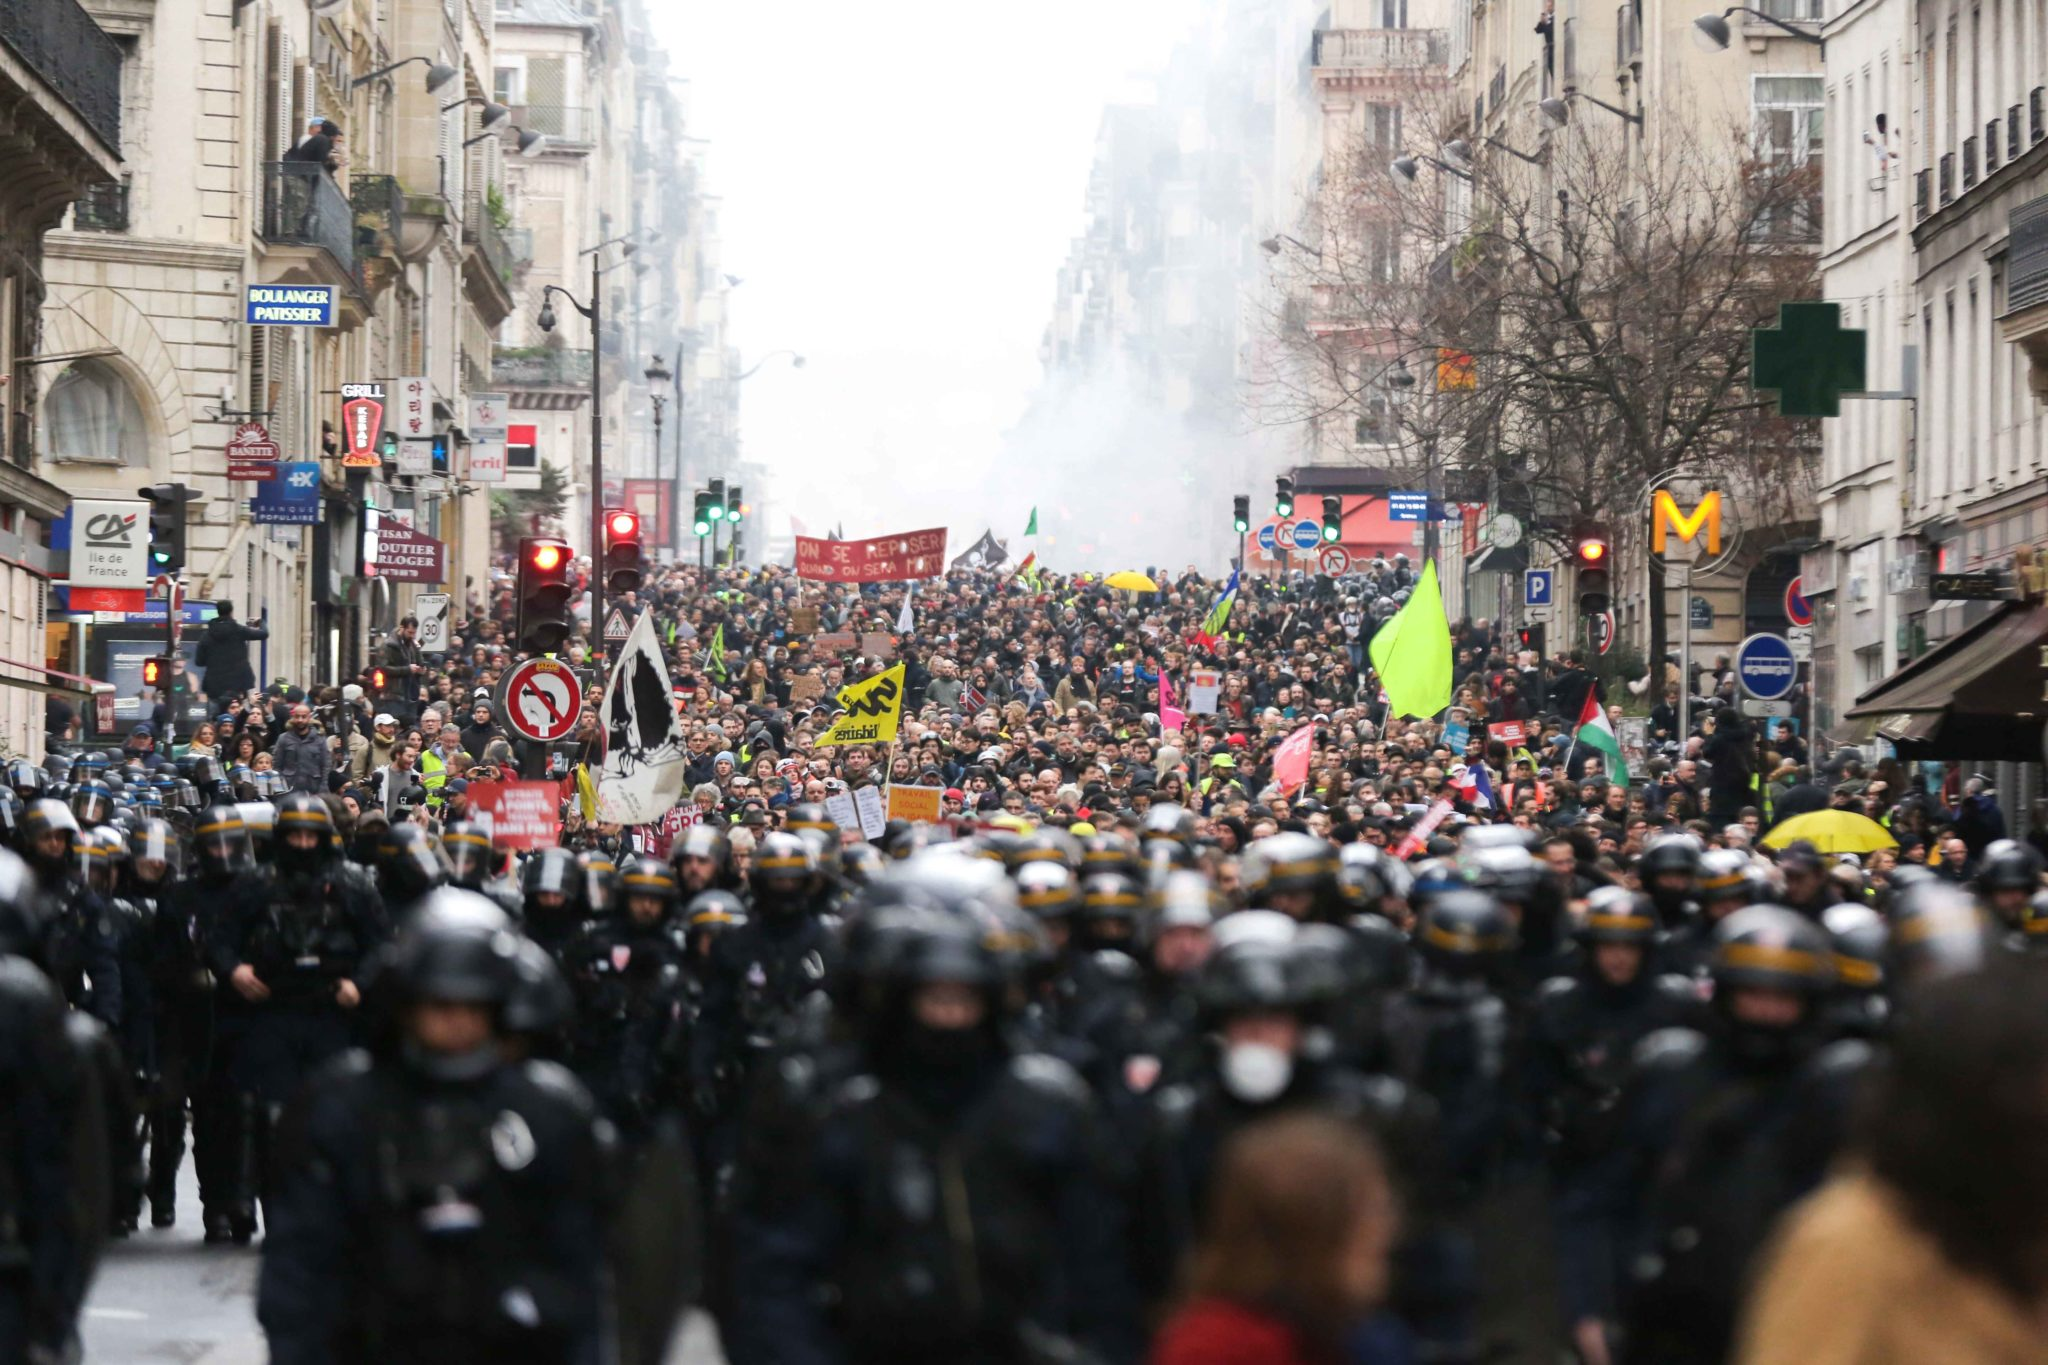 Protestors take to the street during a demonstration in Paris, on January 9, 2020, on the 36th day of a nationwide multi-sector strike against French government's pensions overhaul.